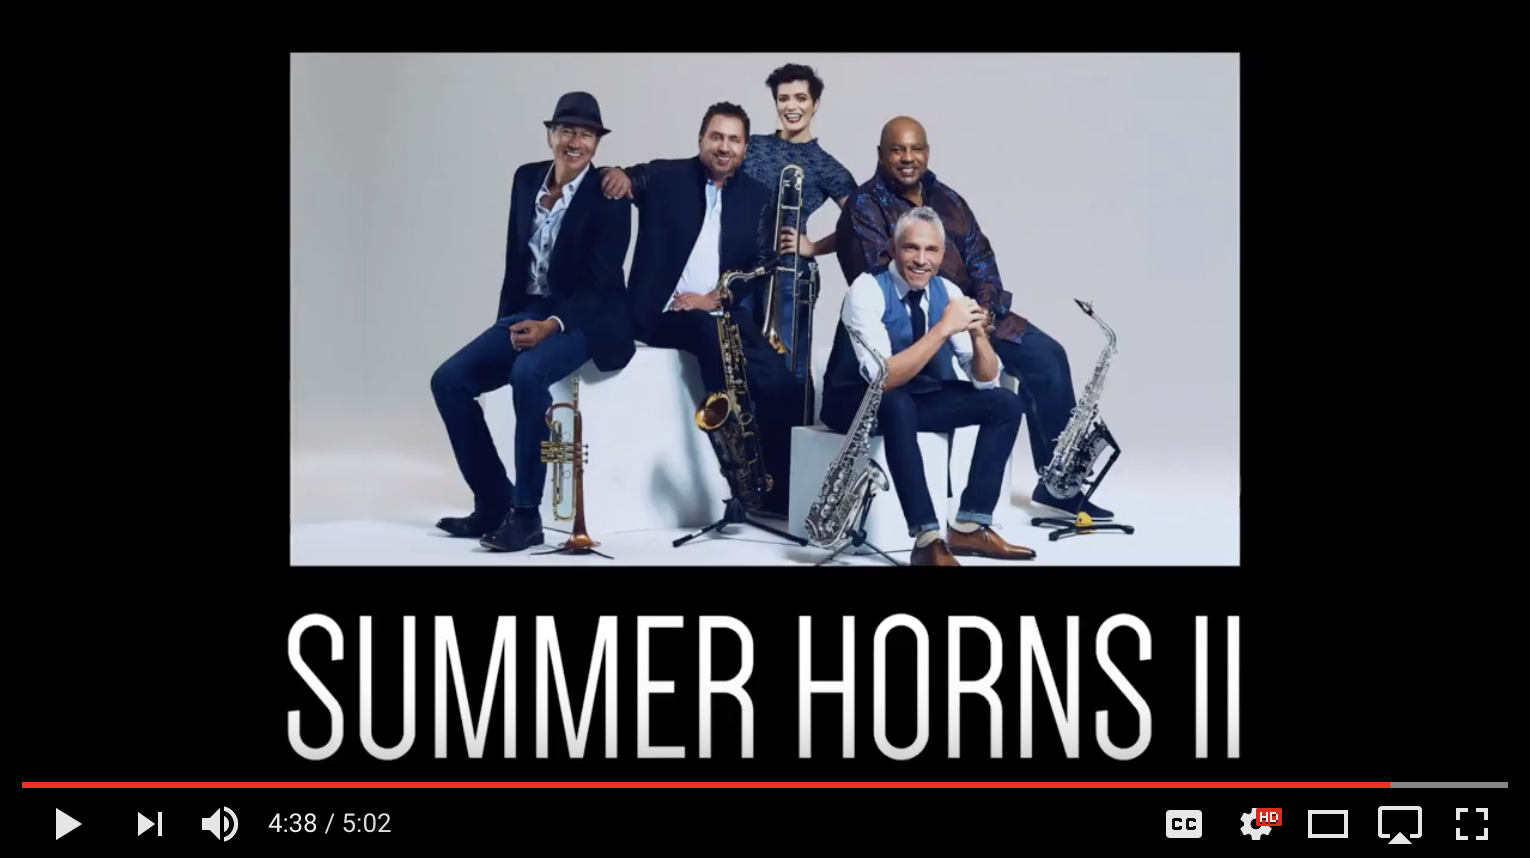 Dave Koz - Summer Horns II : From A to Z